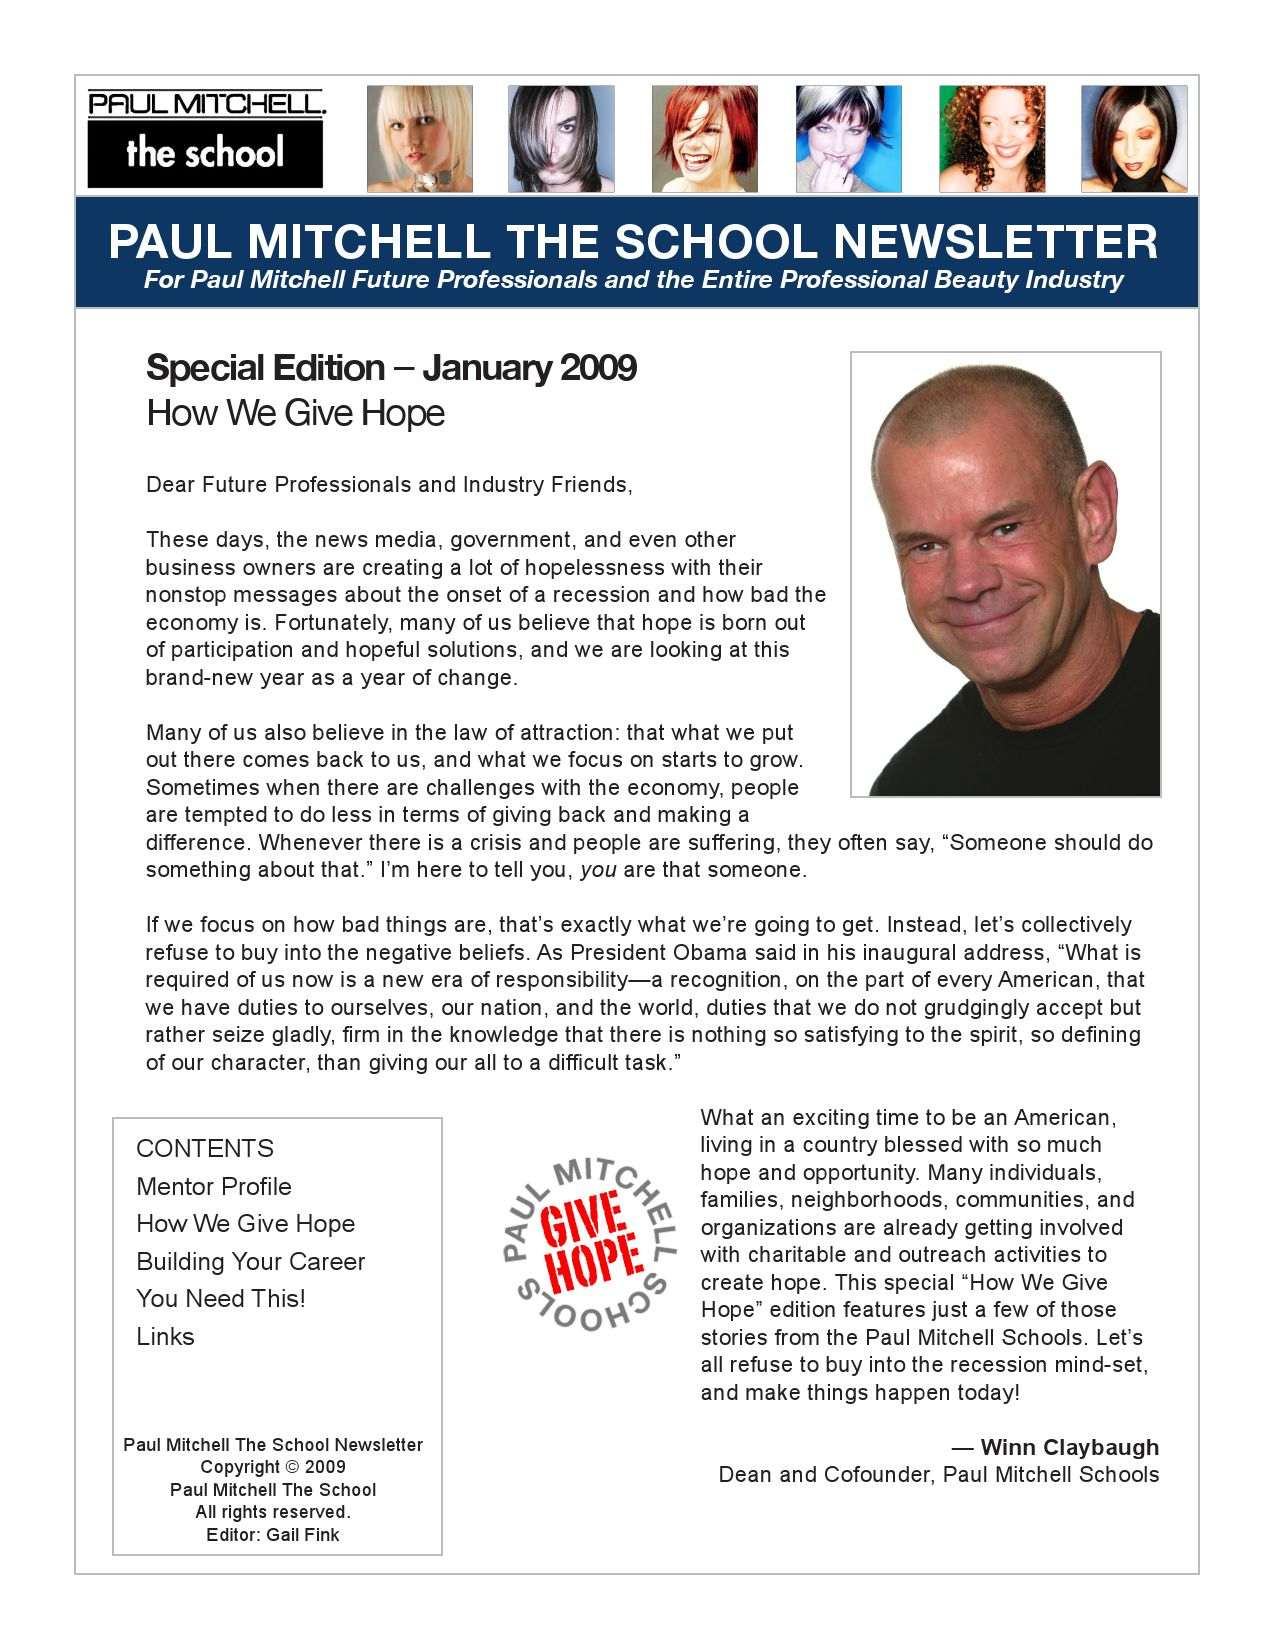 Paul Mitchell Schools January 09 Newsletter by Kyle Parker